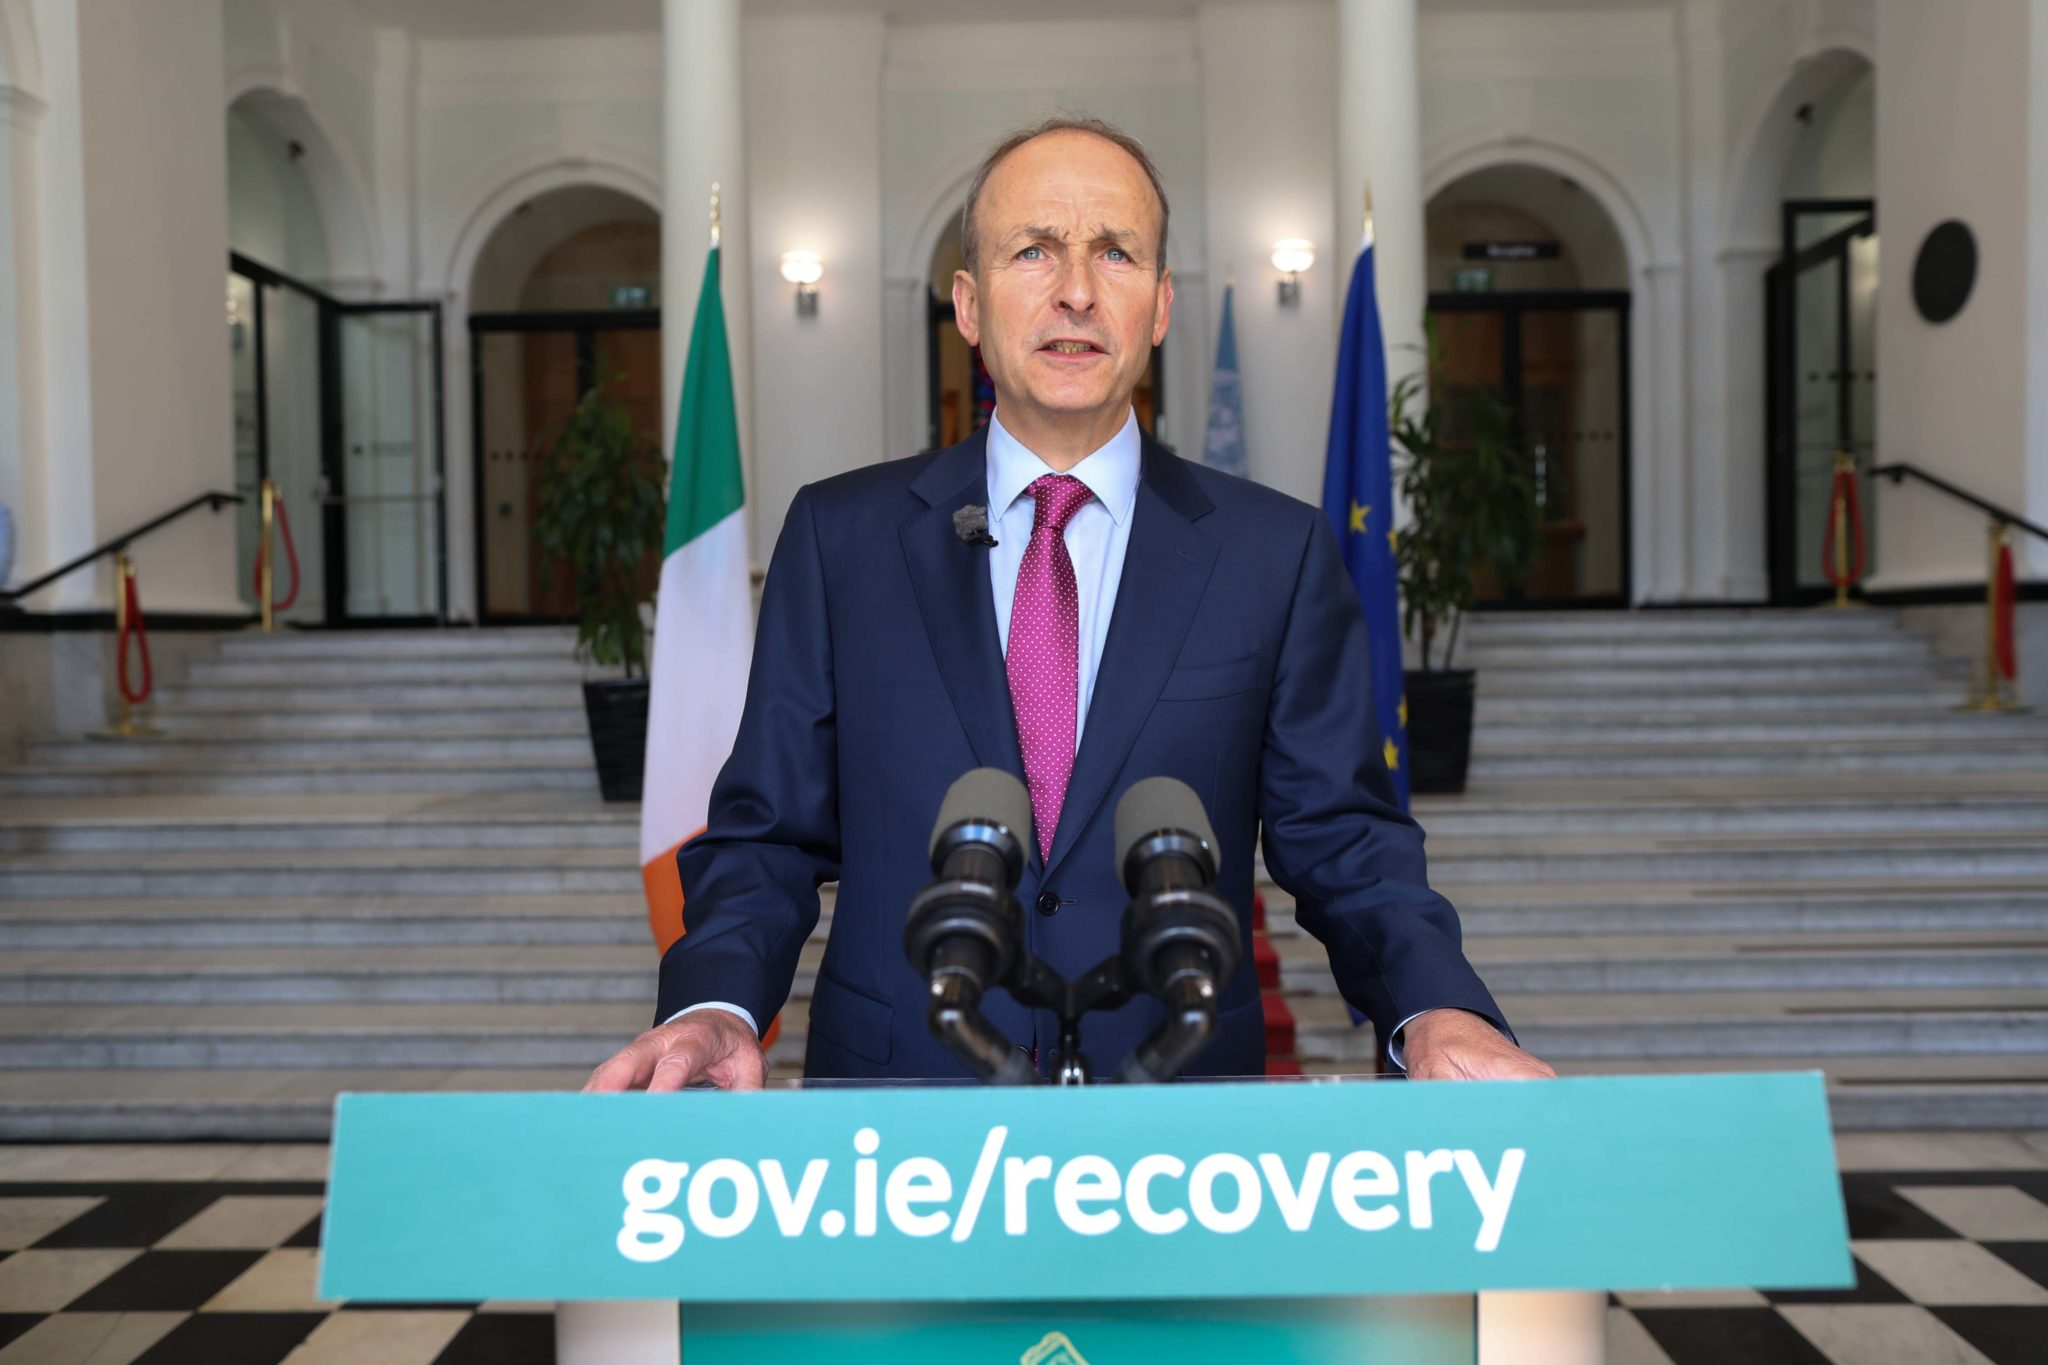 Taoiseach Michael Martin addressing the nation at Government Buildings